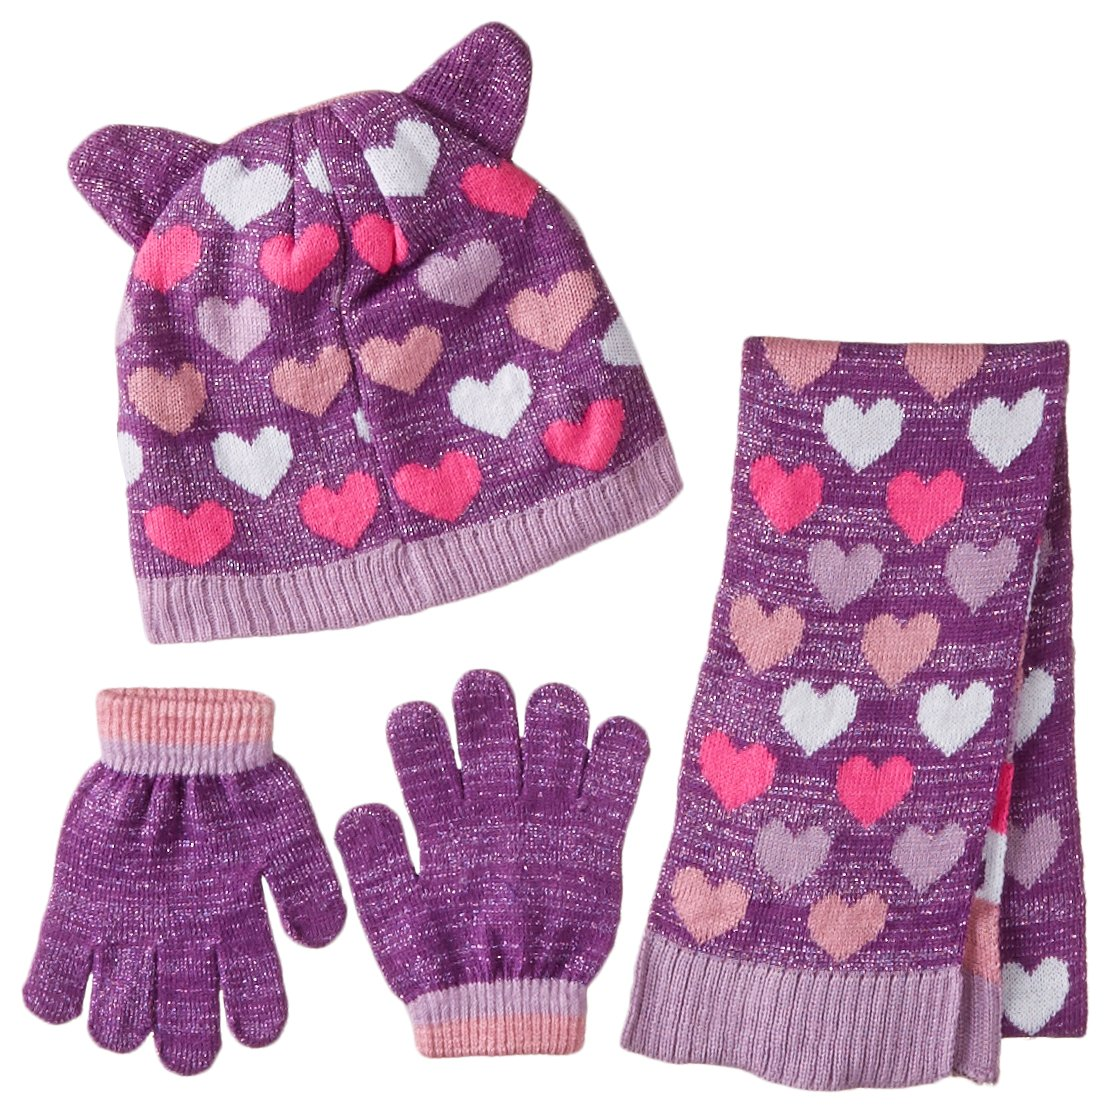 Toby & Company Girls' Critter Inspired 3 Piece Set with Computer Knit Hat, Purple, One Size